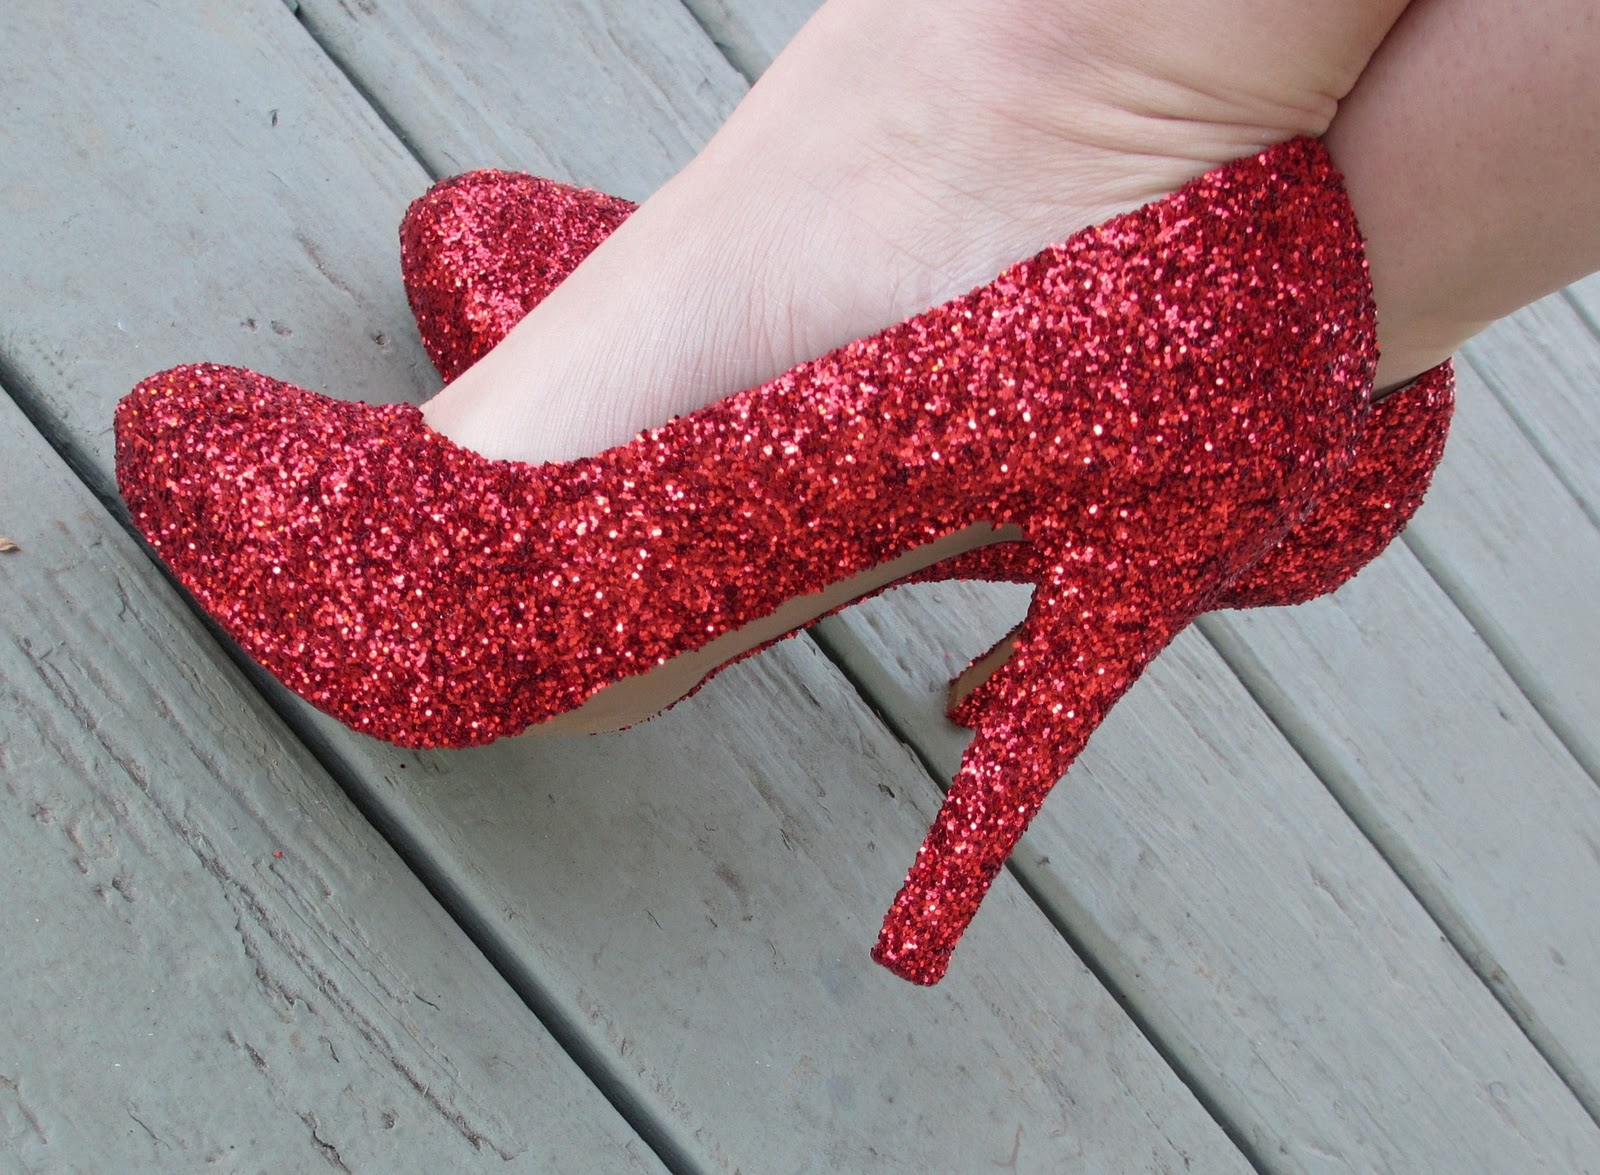 How to Make Glitter Pumps How to Make Glitter Pumps new pictures